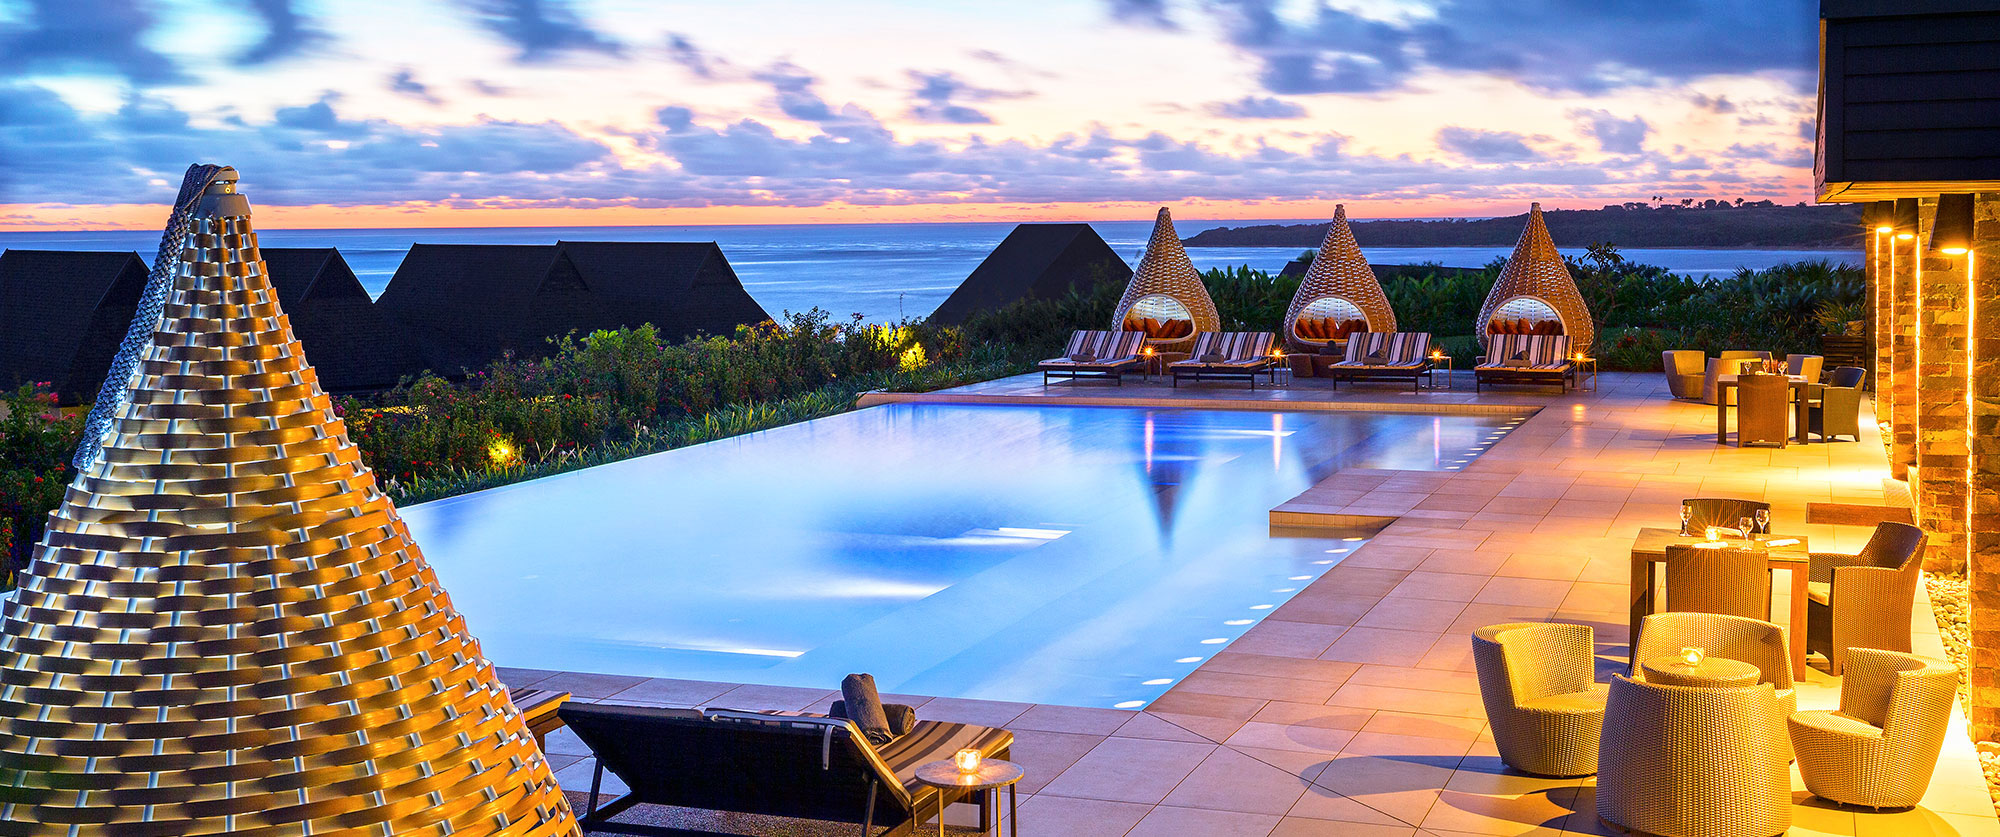 Fiji Honeymoon Packages: InterContinental Fiji Honeymoon